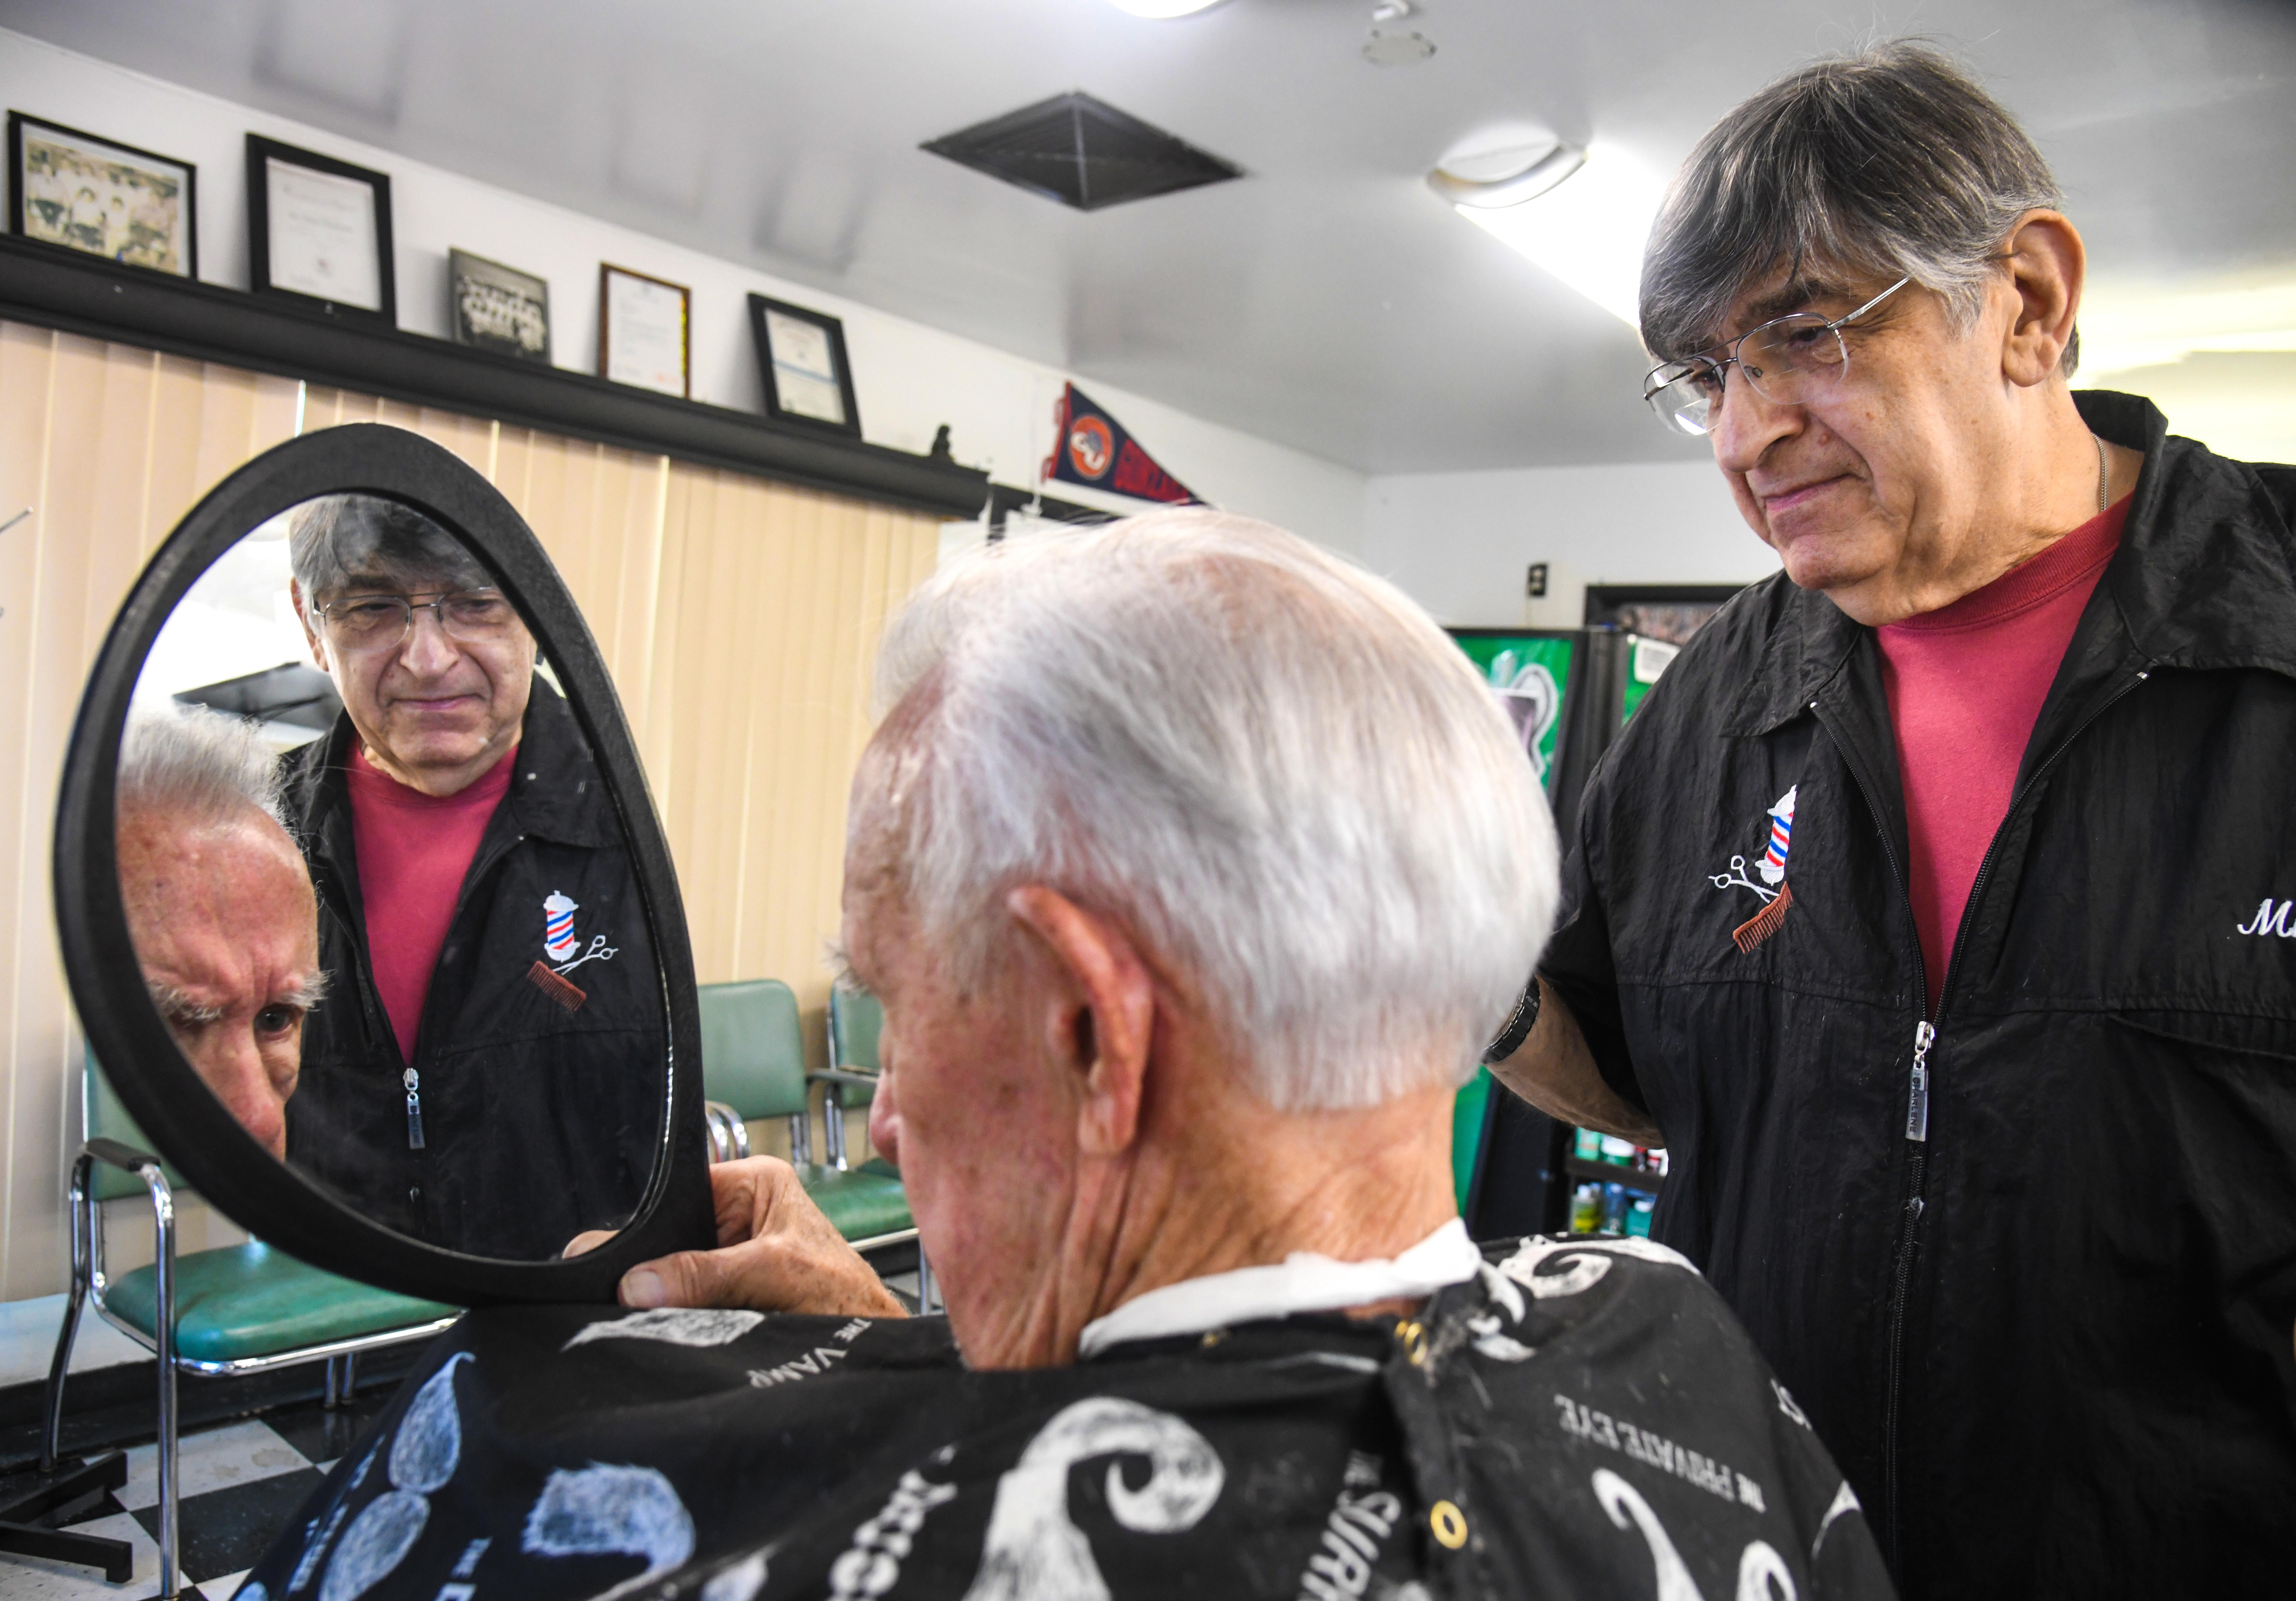 Barber Mike Tabit: Cutting hair for 57 years | The Spokesman